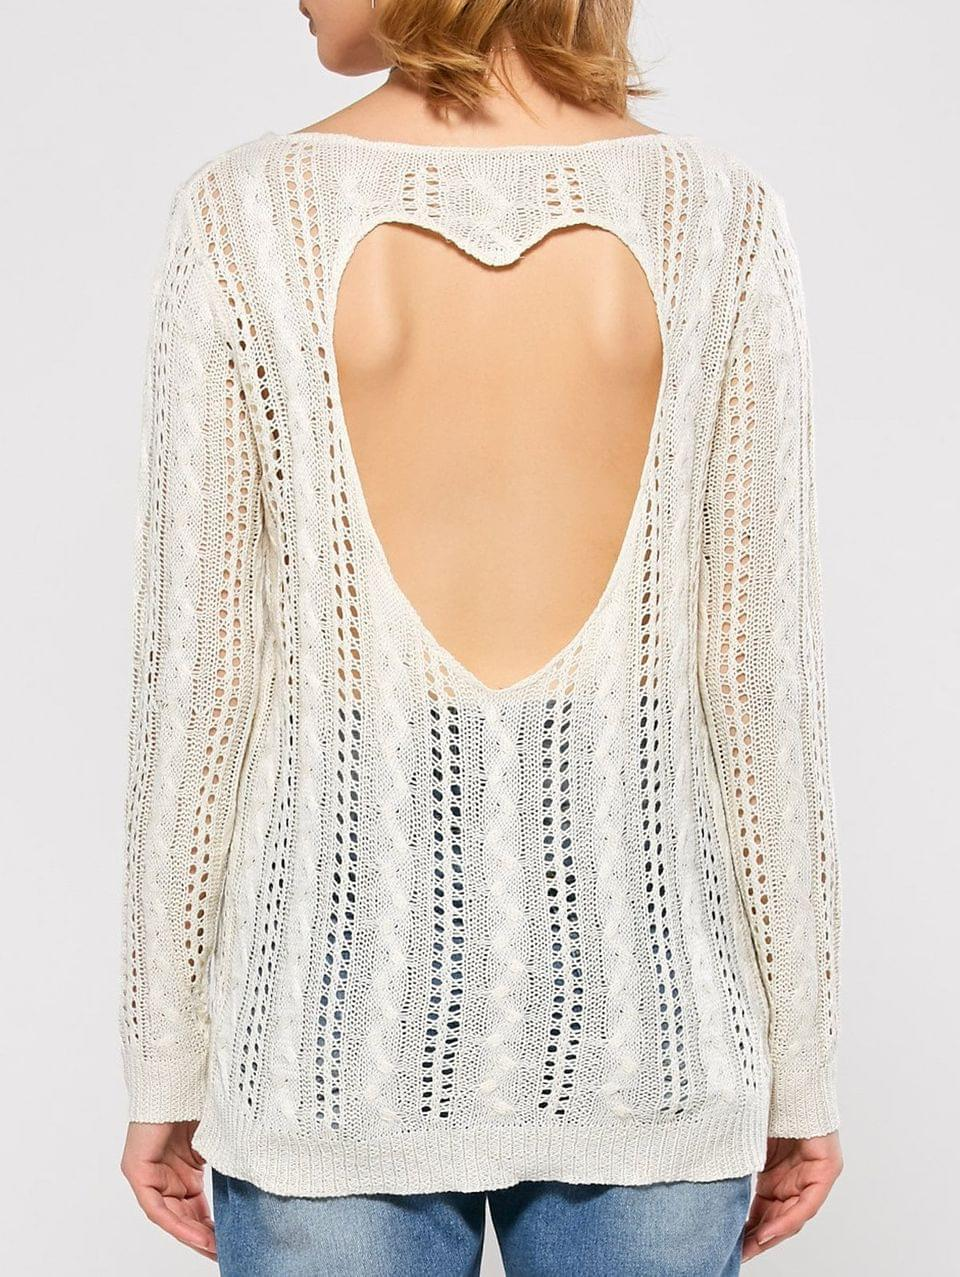 Women's Heart Cutout Back Open Knit Sweater - White M